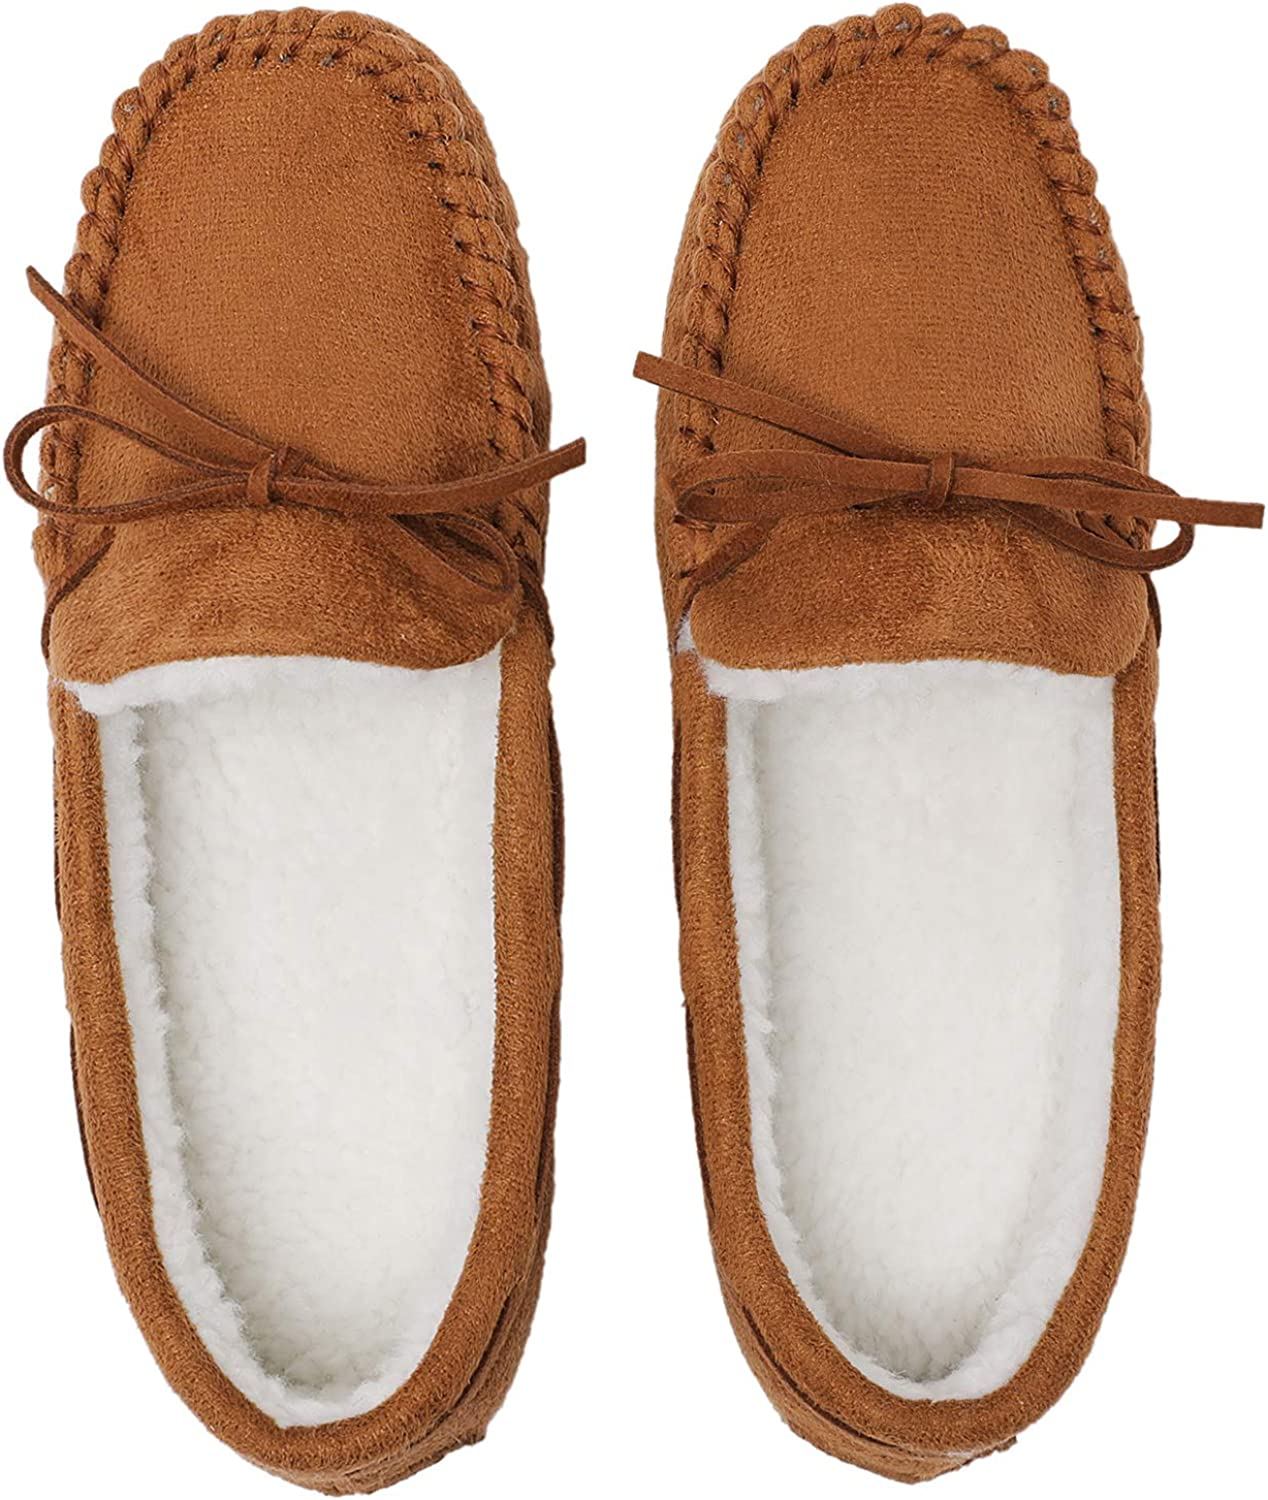 Veittes Women's House Slippers - Comfort Soft Comzy Winter Indoor Outdoor Sole House Shoes.